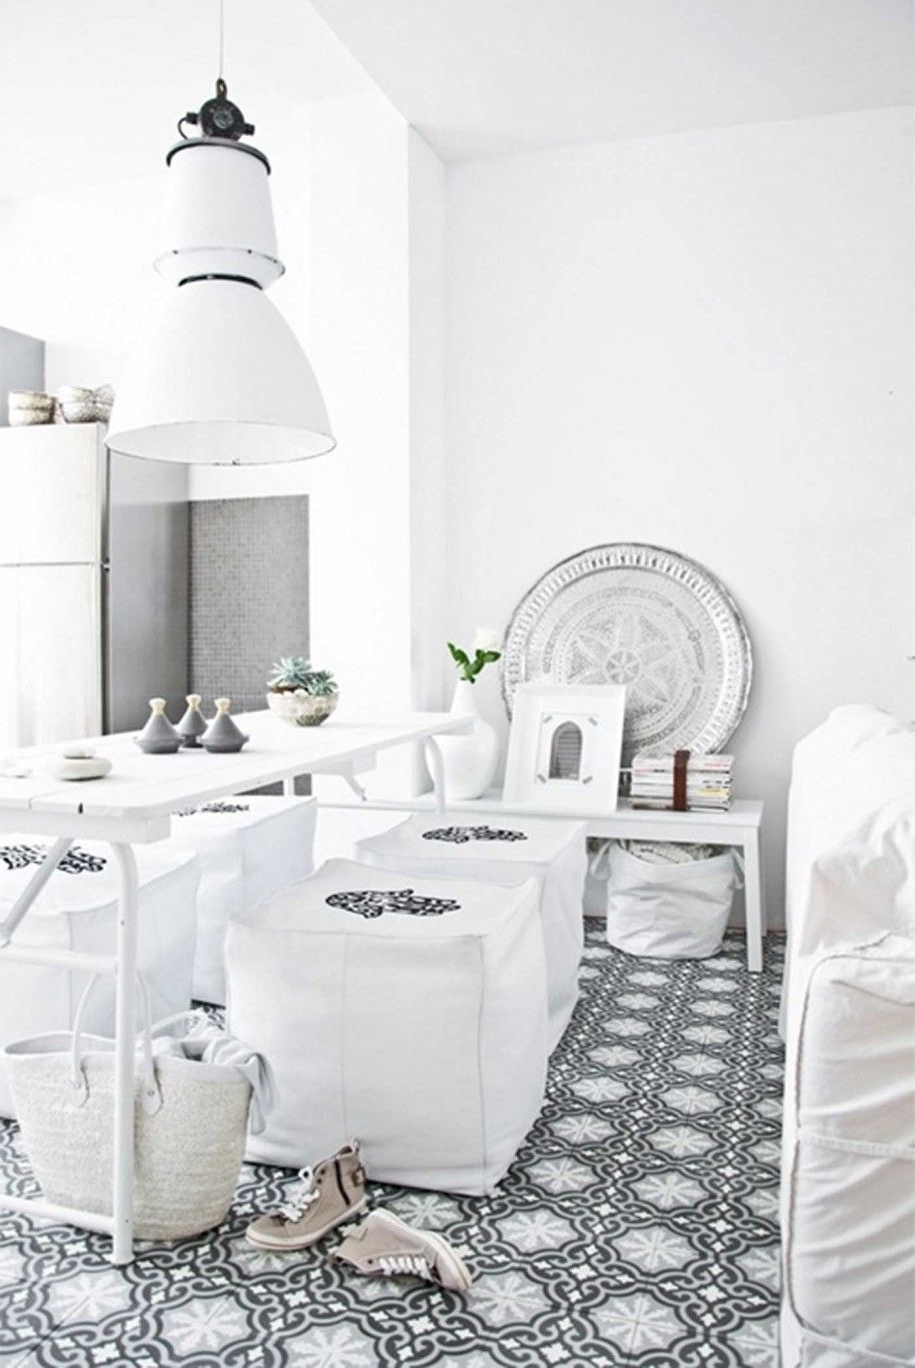 Shiny White Dining Tables With Regard To Current Exquisite Moroccan Style Dining Room Designs : Shiny Dining Room (View 25 of 25)